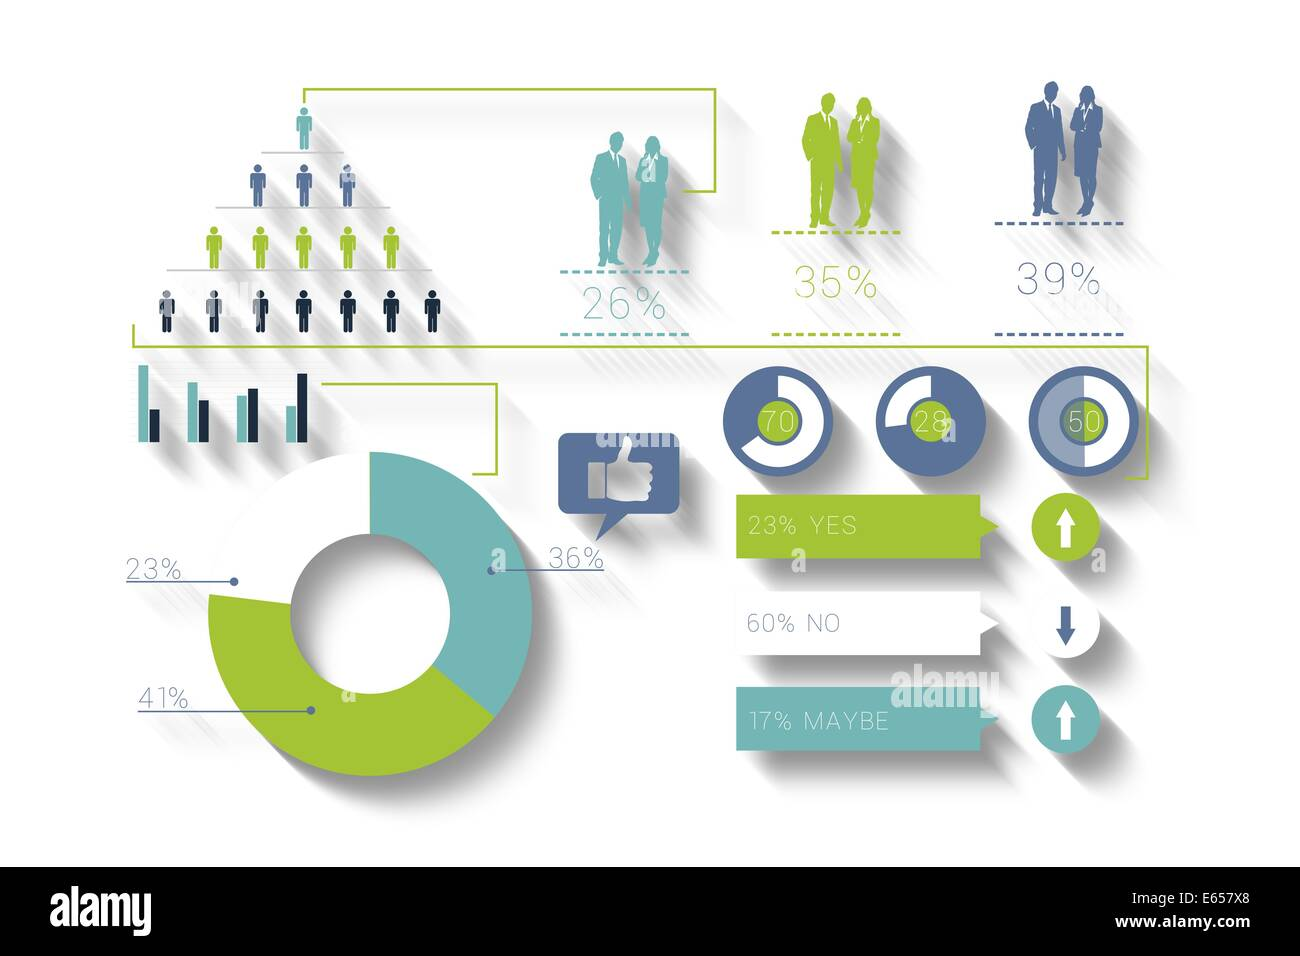 Digitally generated blue and green business infographic - Stock Image